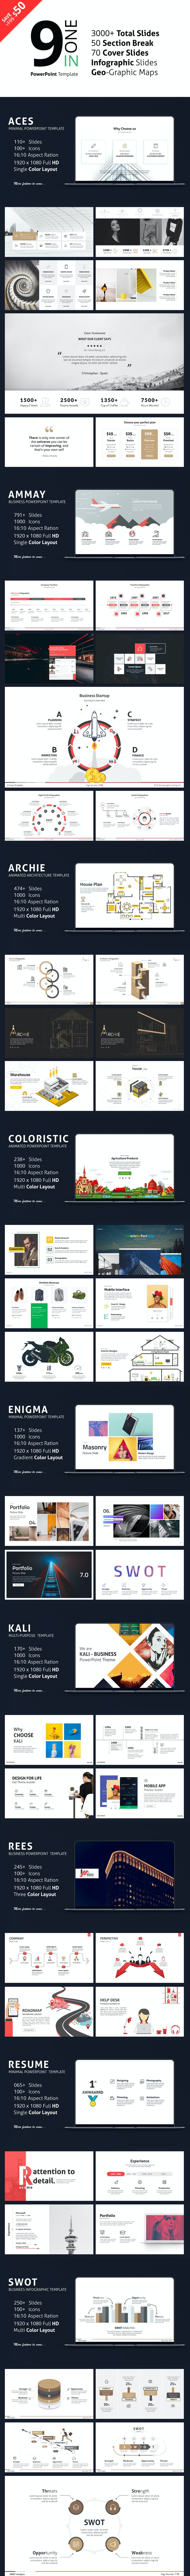 9 in 1 PowerPoint Template - Bundle - PowerPoint Templates Presentation Templates